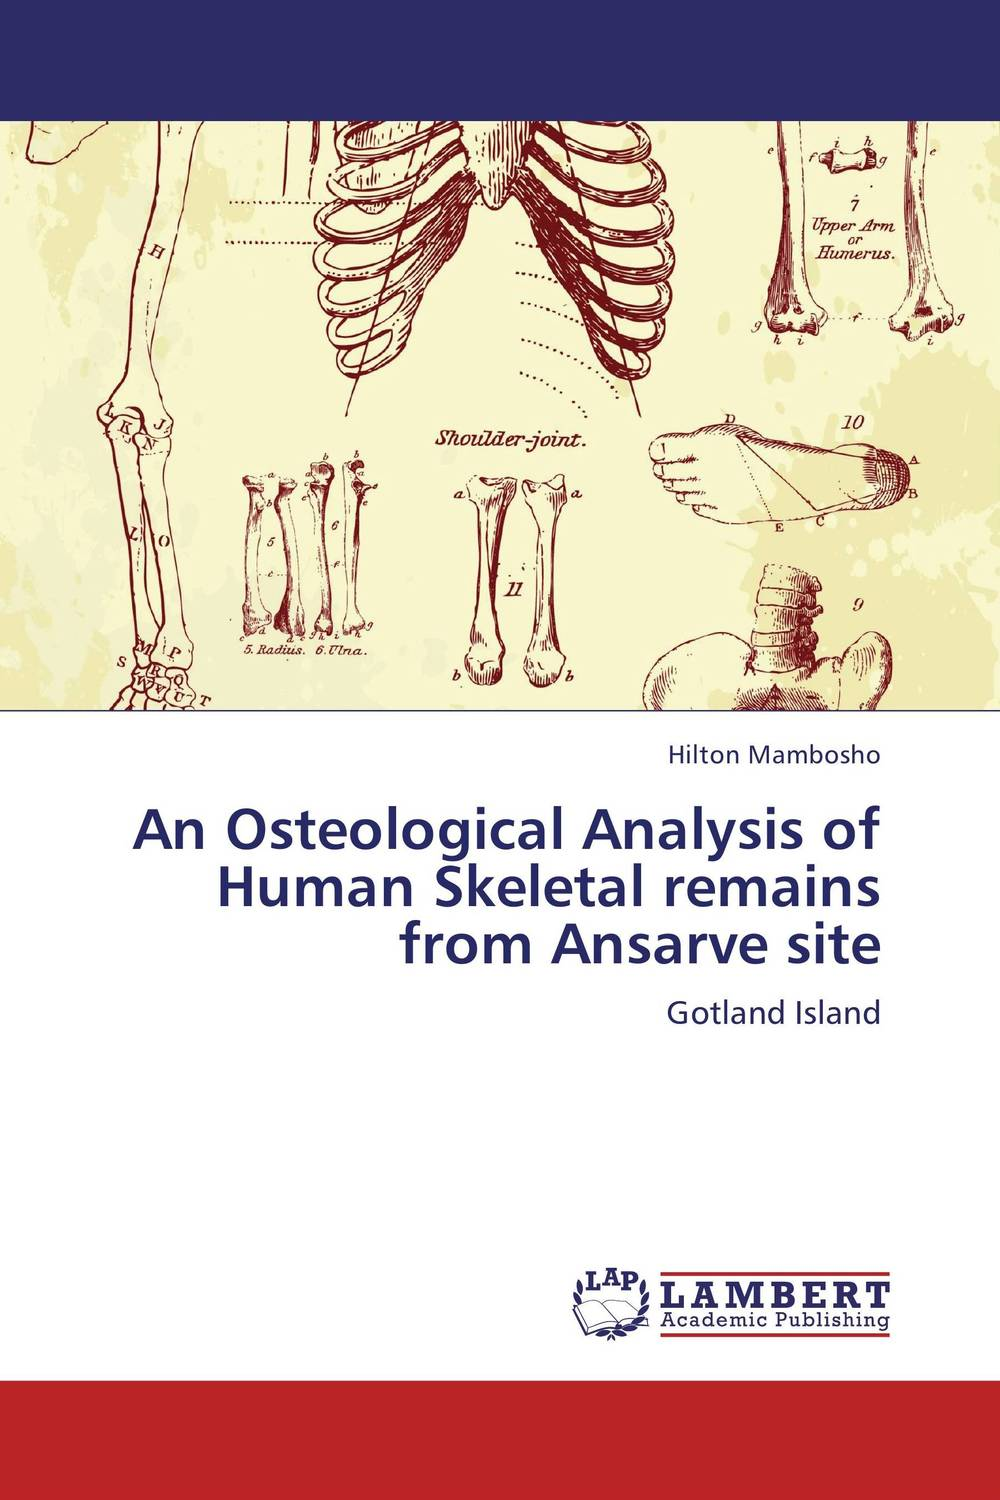 An Osteological Analysis of Human Skeletal remains from Ansarve site stanley j olsen fish amphibian and reptile remains from archaeological sites pt1 – southeastern and southwestern us appendix–osteology of wild turkey